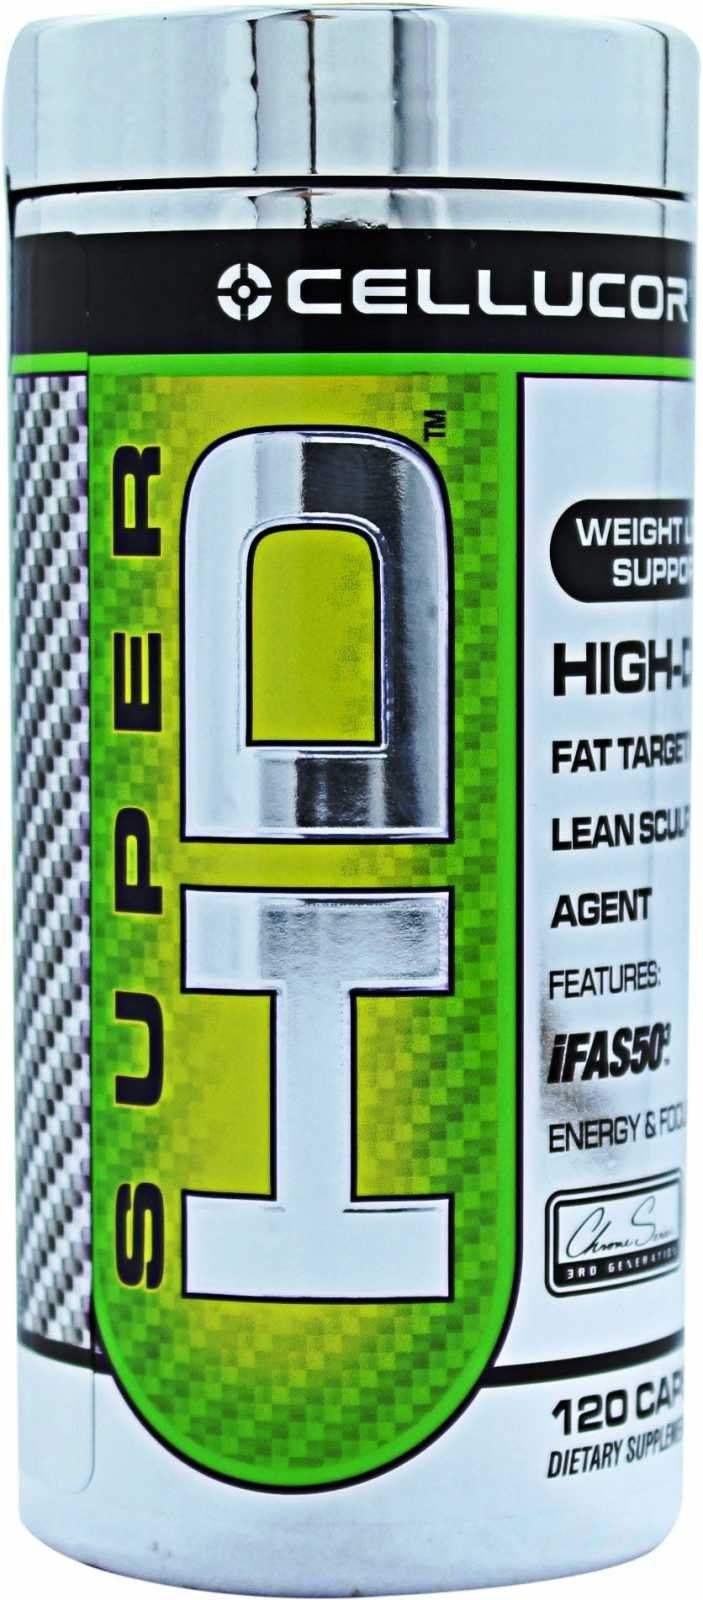 Cellucor Super HD Capsules, 120 Count Pack by FTW Nutritional Supplements